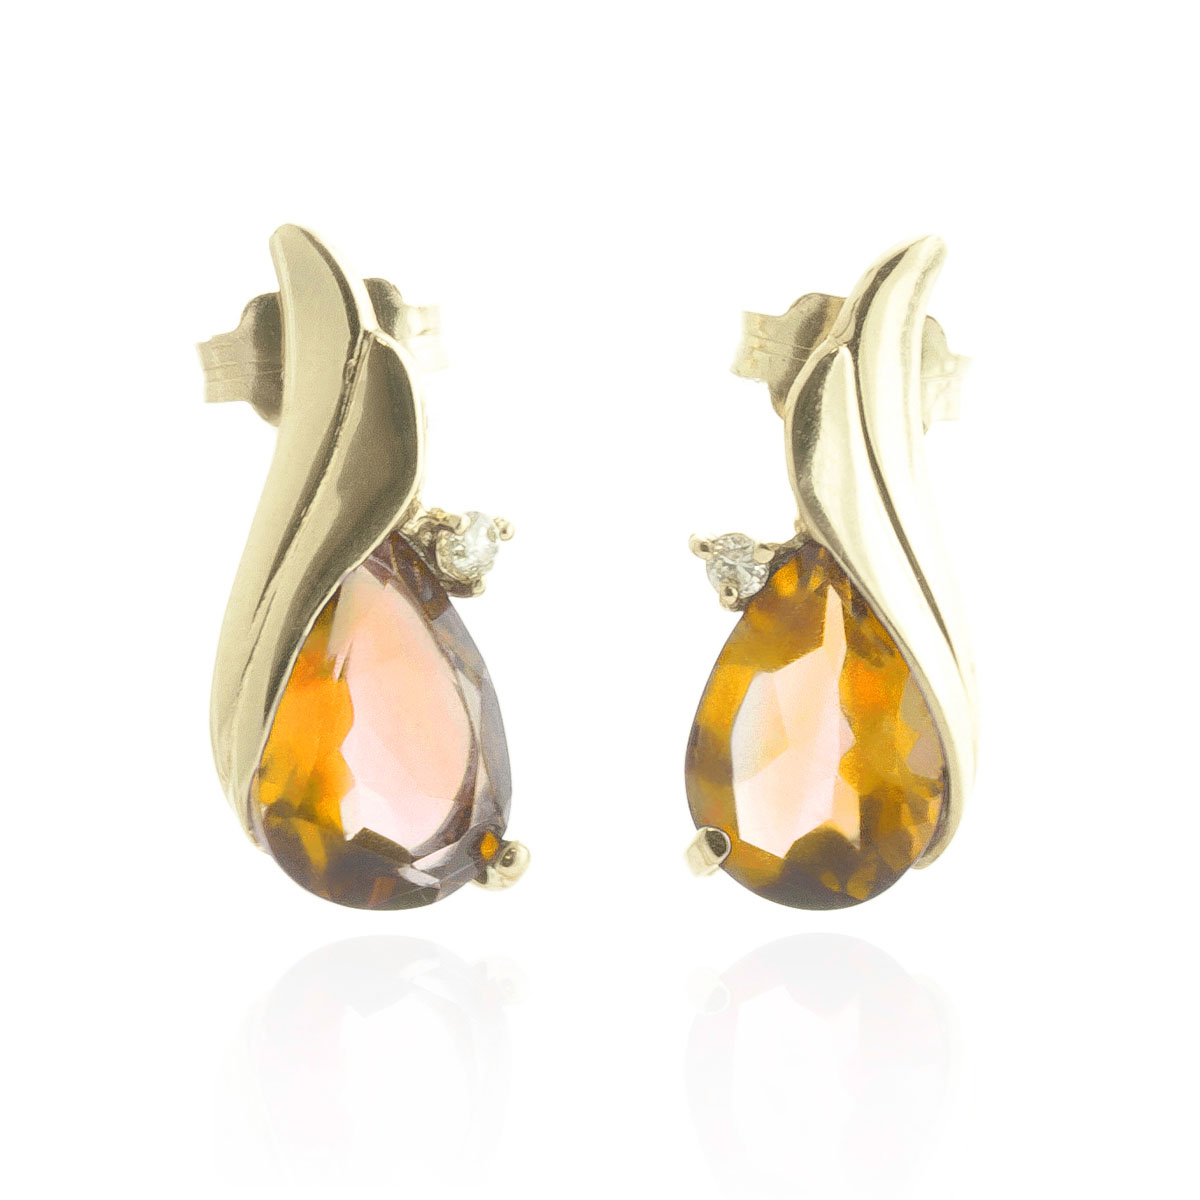 Citrine Stud Earrings 3.26 ctw in 9ct Gold